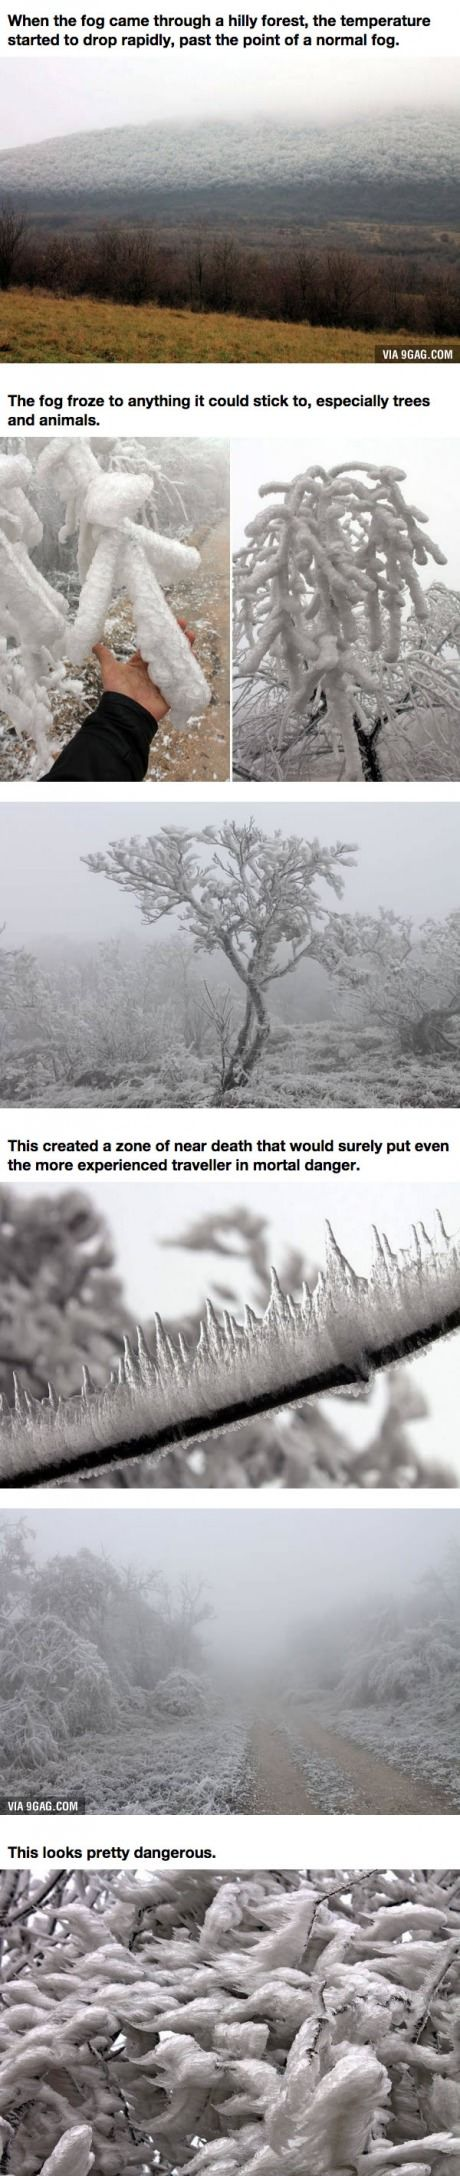 This Dangerous Fog In Hungary Froze Nearly Everything In Its Path